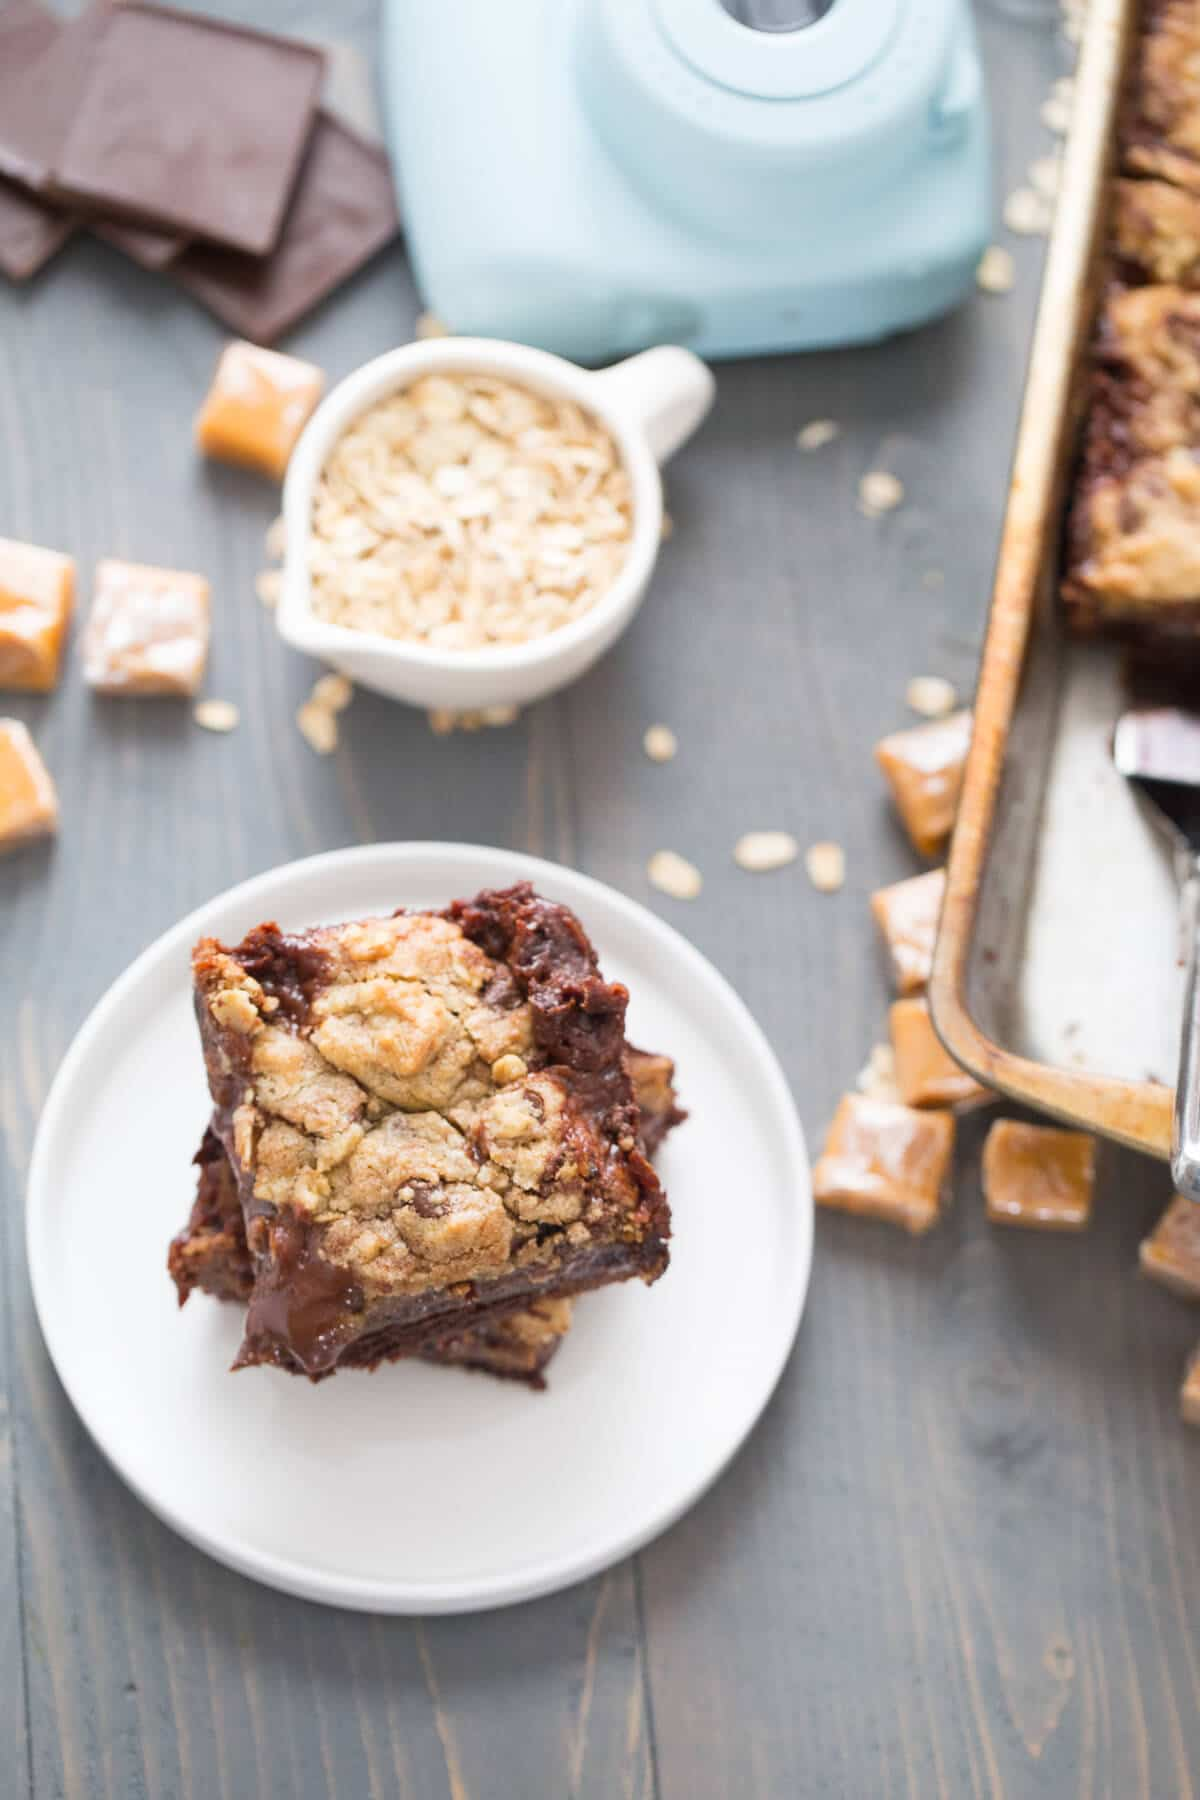 Brookie bars are so easy and delicious, but when you add a caramel filling, they become amazing!